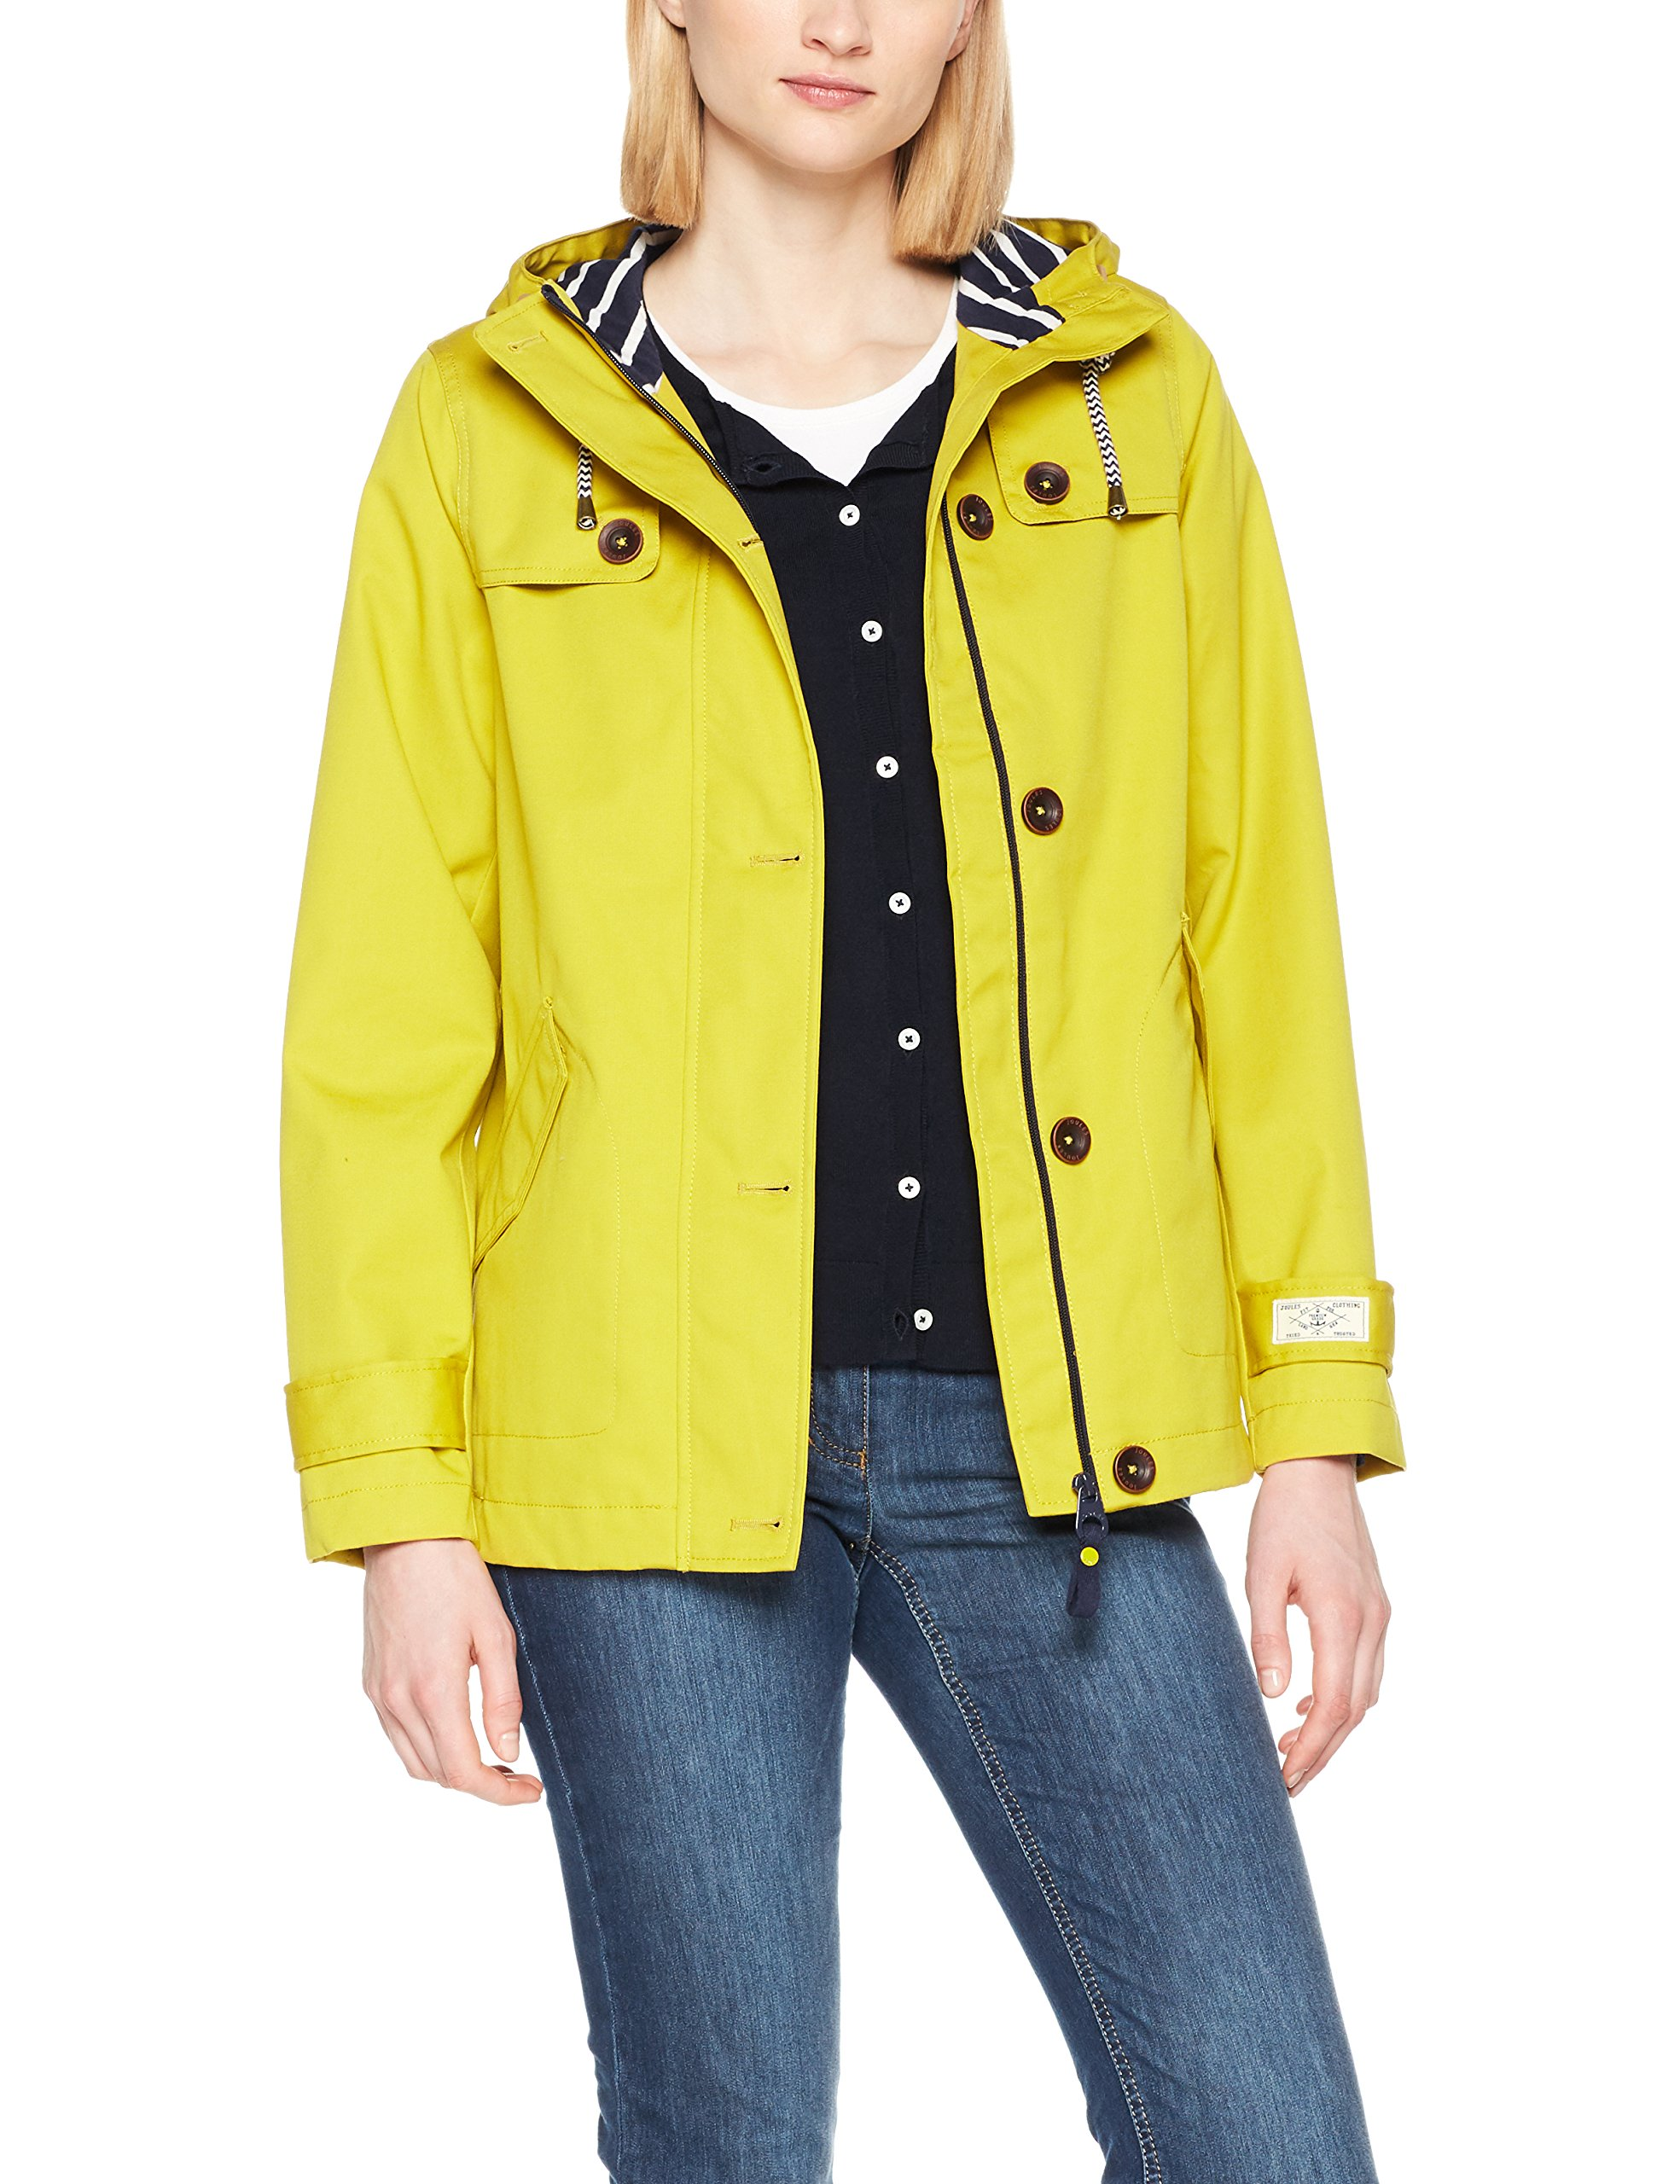 Gold Joule Longues Coast Relaxed FemmeOrantique Imperméable Tom Antgold42 relaxedManteau Capuche Manches À fYyb6g7